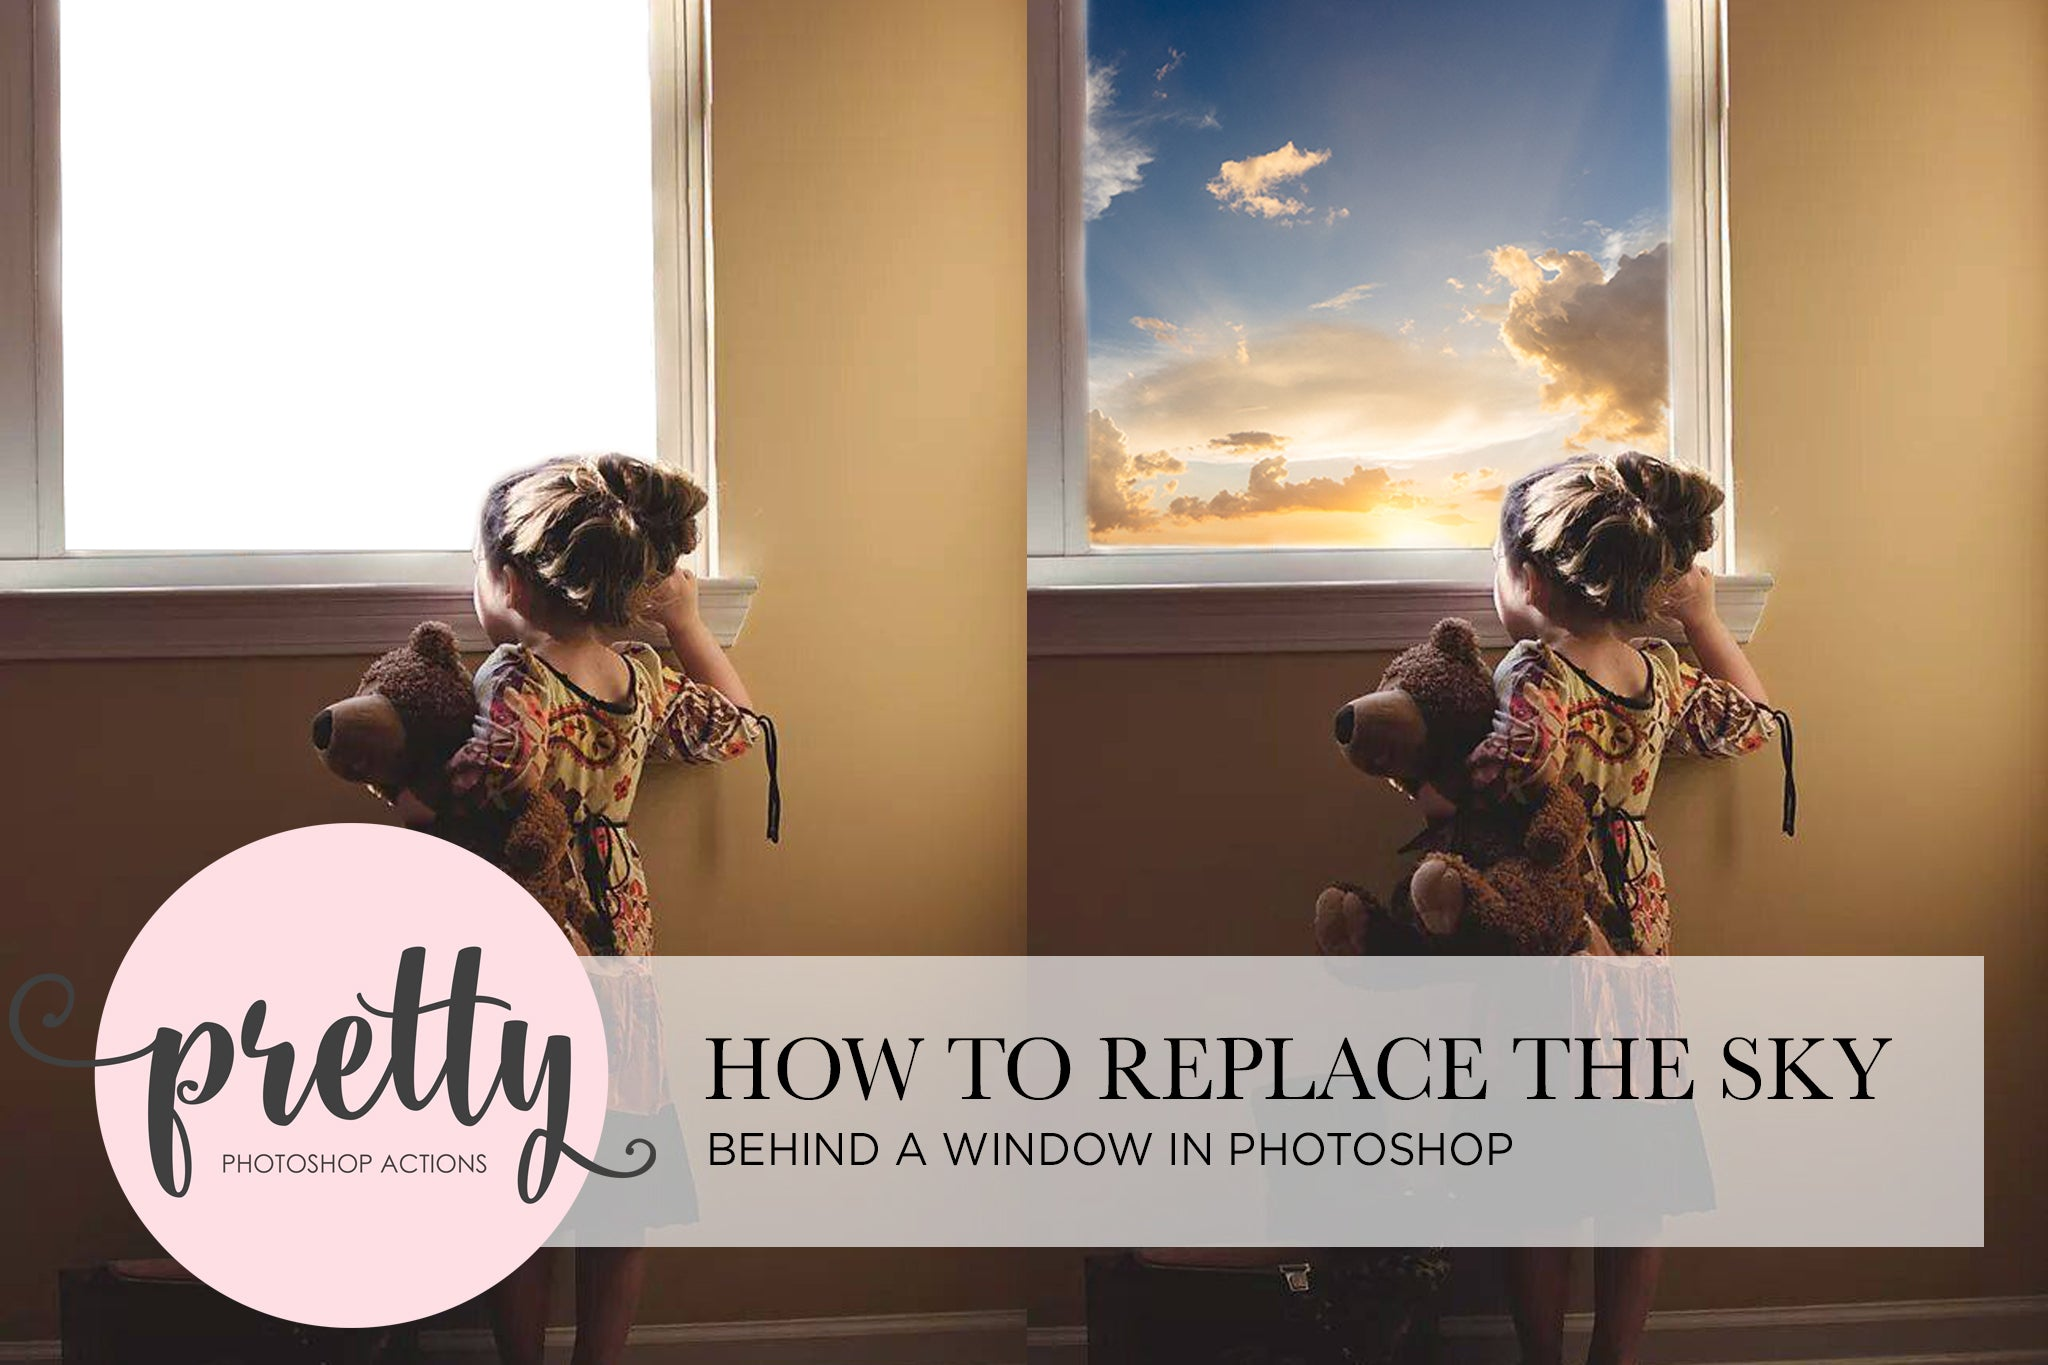 How to Replace the Sky in Photoshop - Pretty Photoshop Actions Tutorial